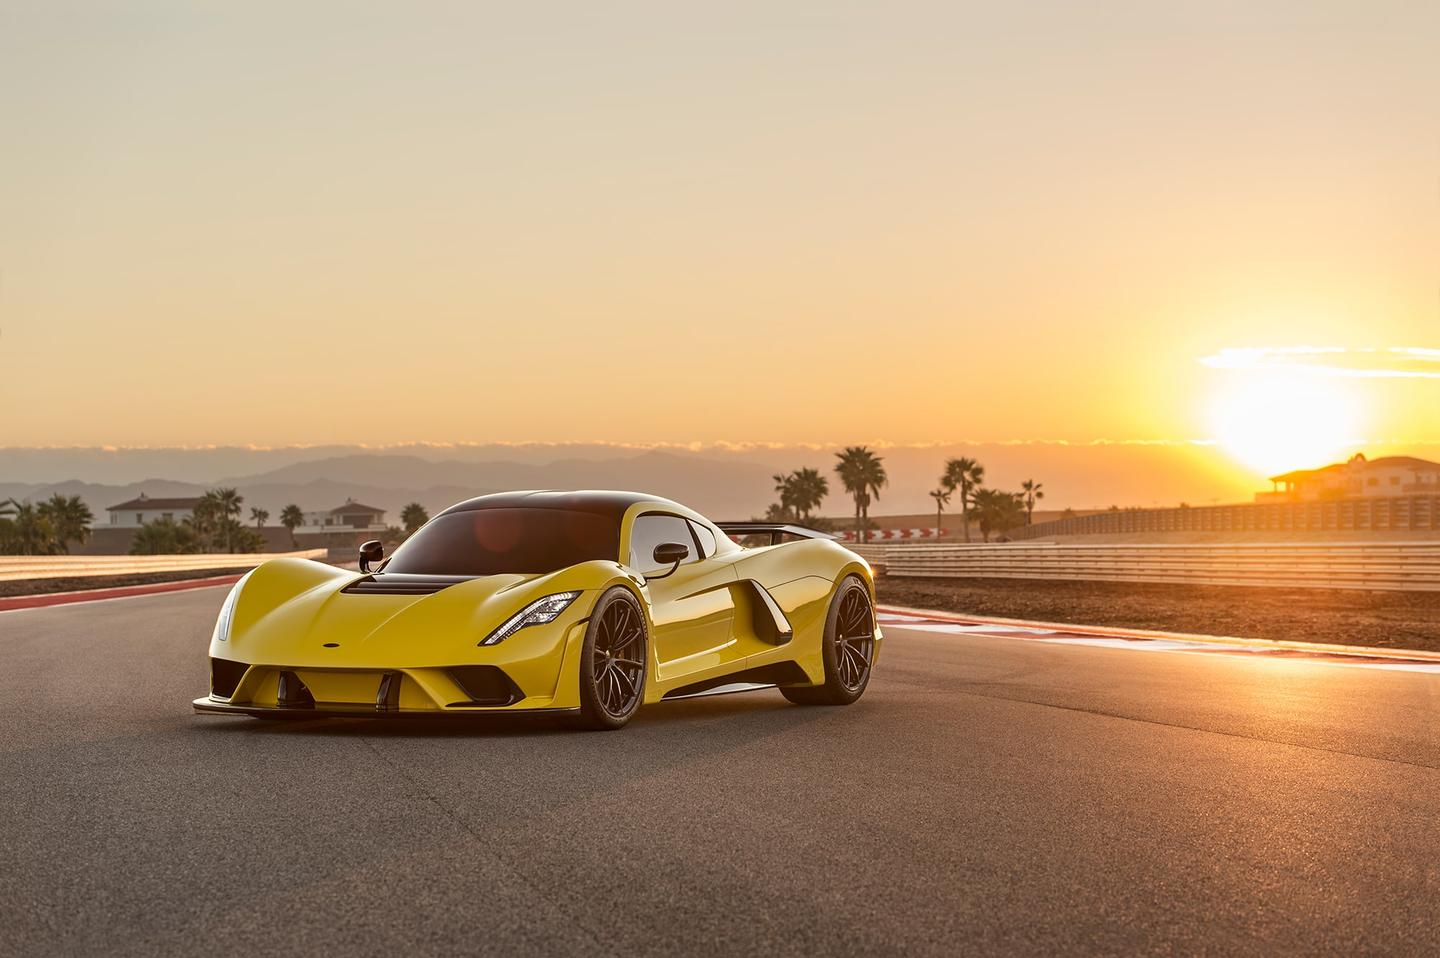 The Hennessey Venom F5 has a chance to be the first production car to go faster than 500 km/h